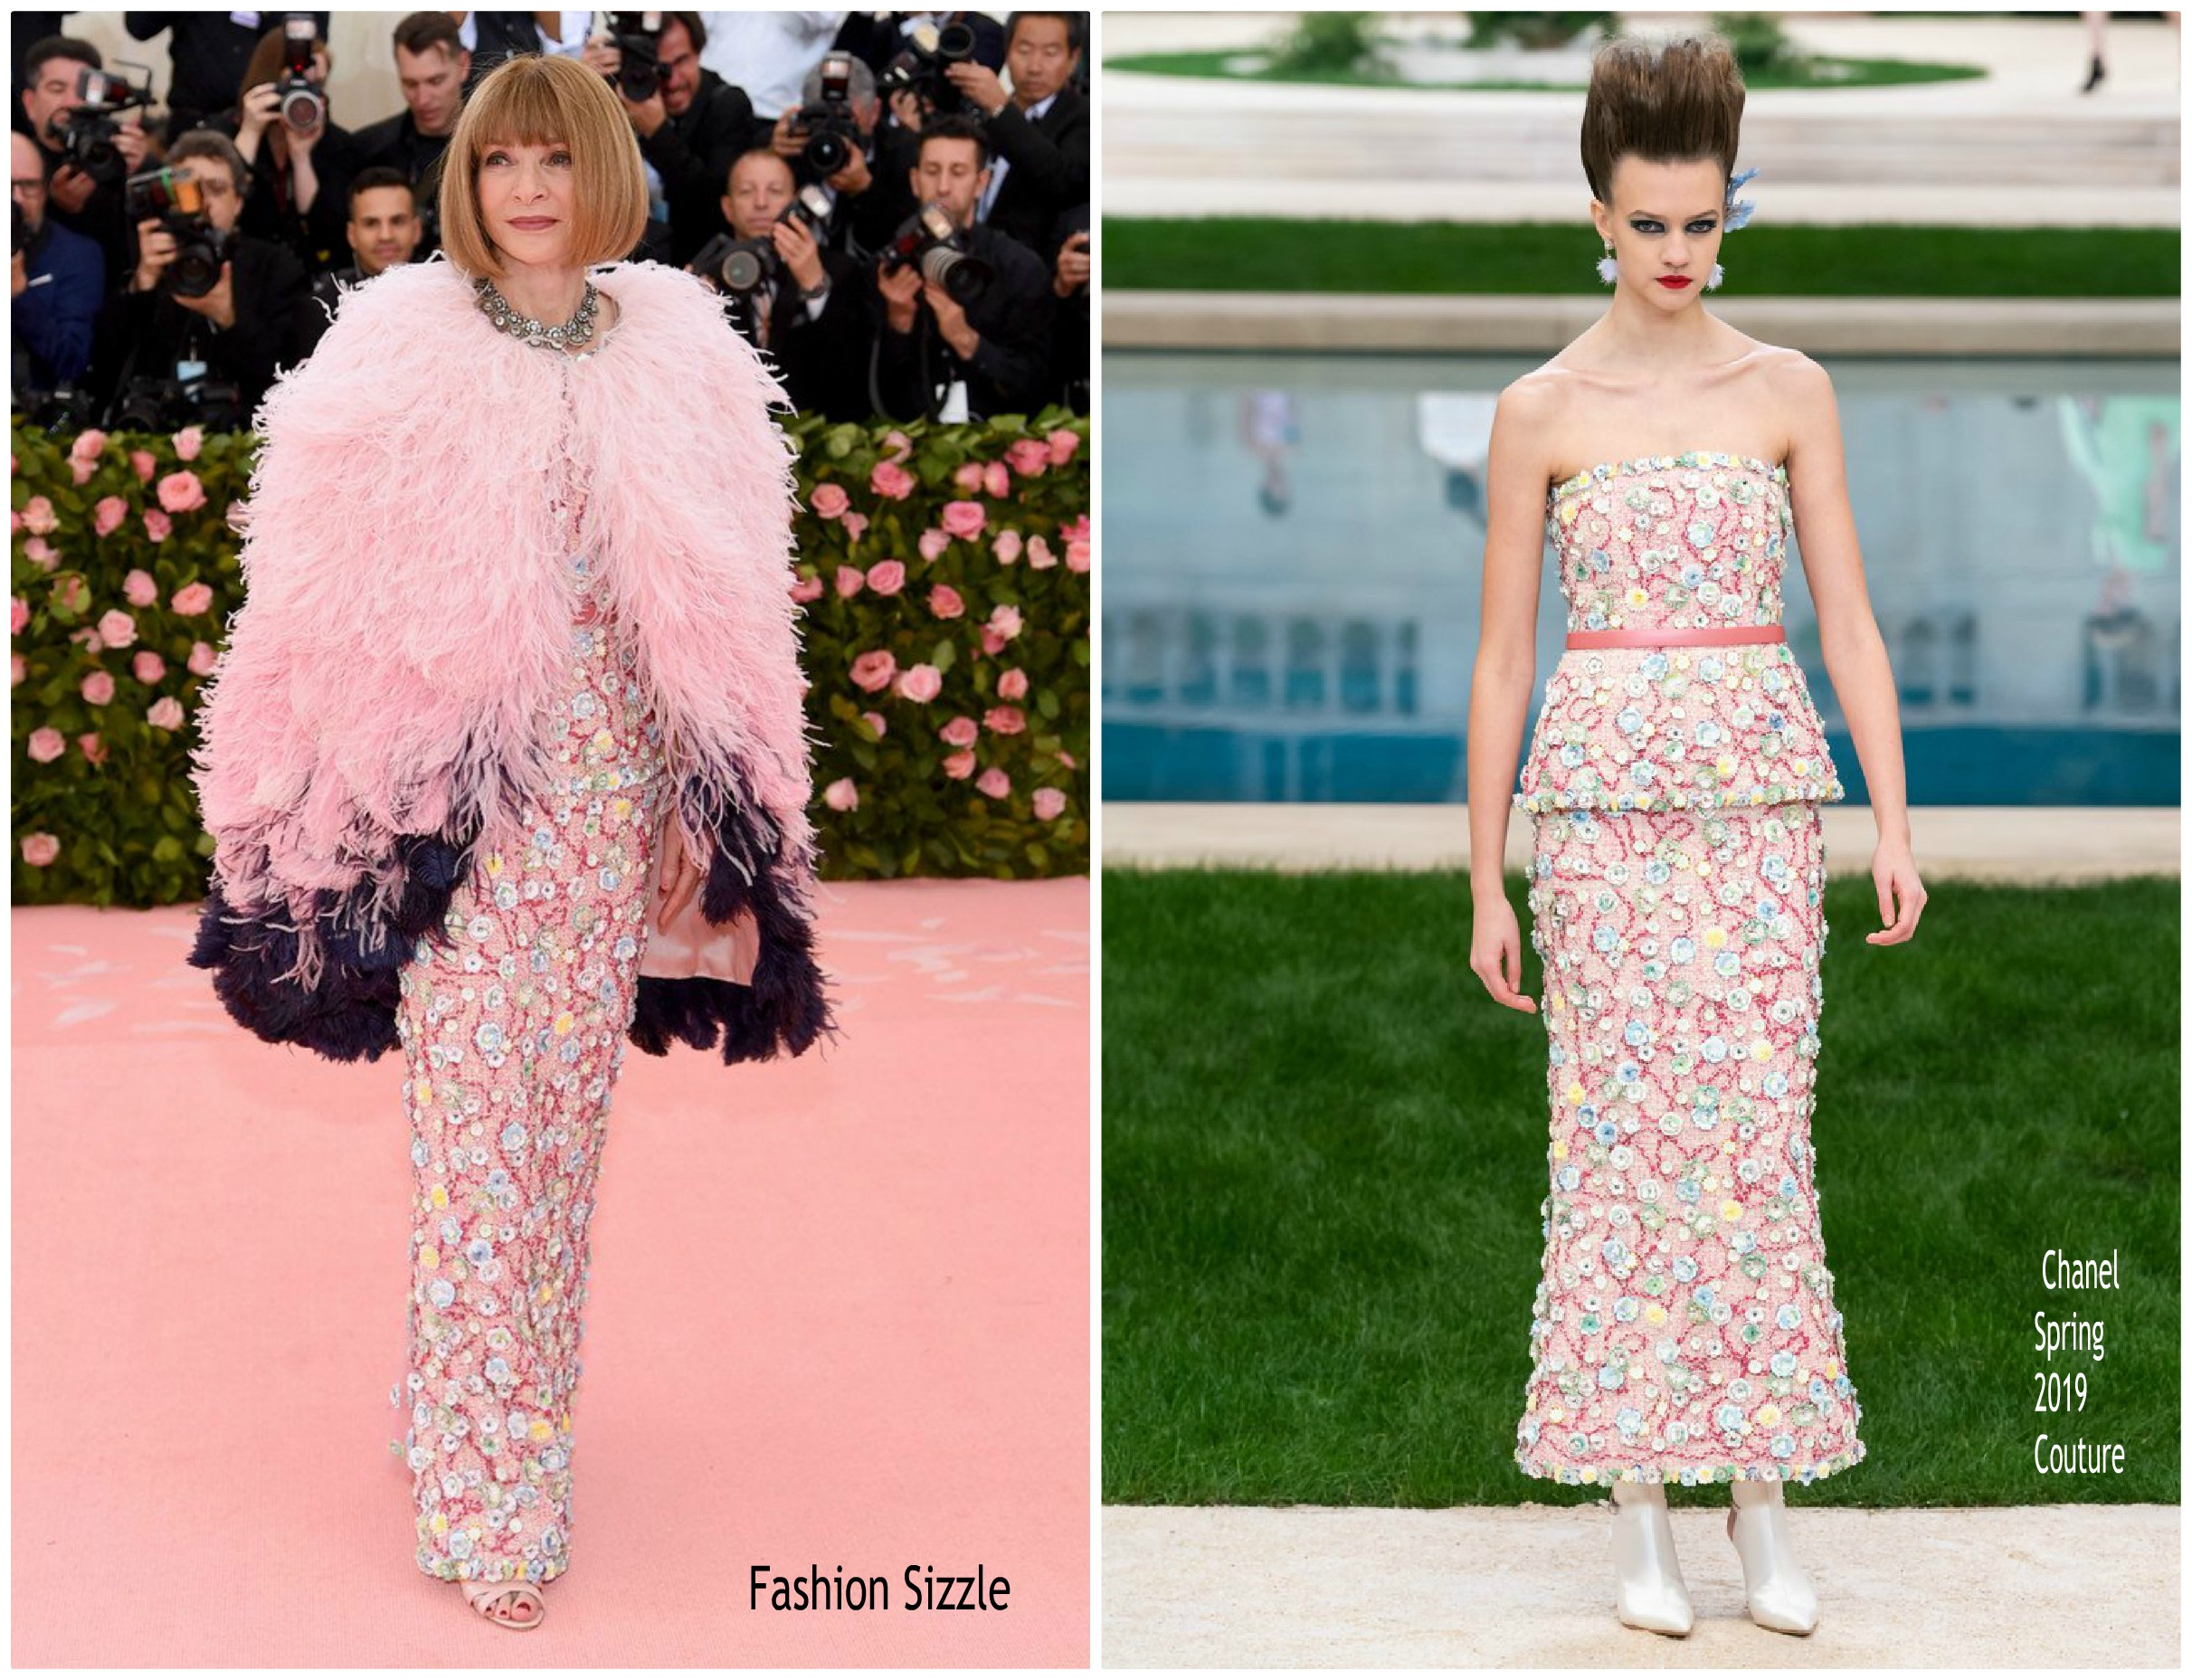 anna-wintour-in-chanel-couture-2019-met-gala